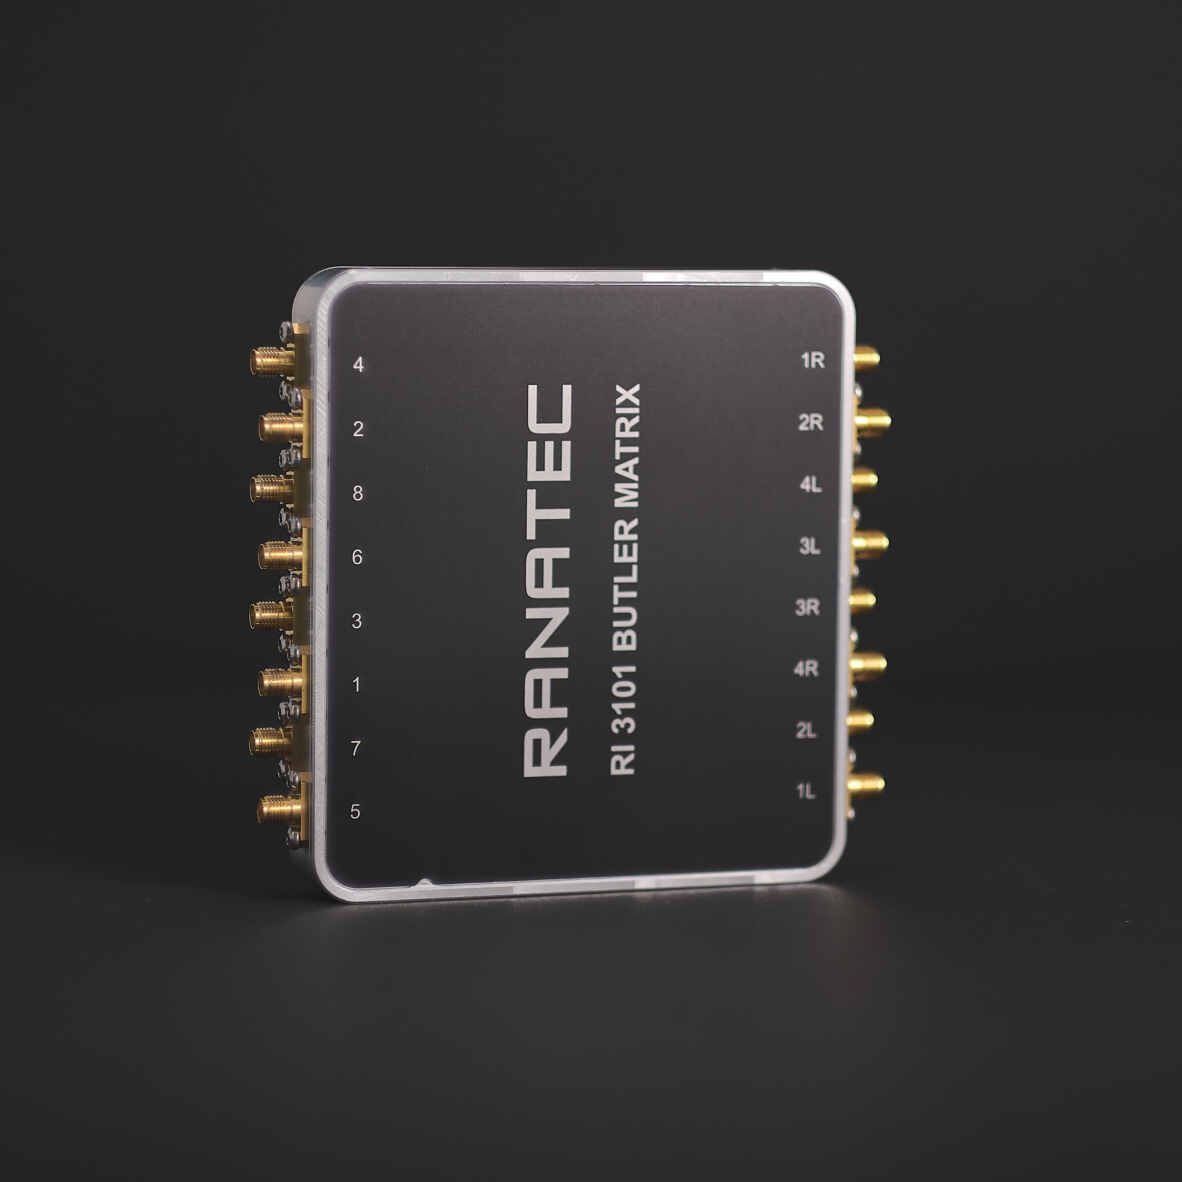 Butler matrix used for wireless test applications using microstrip technology |Ranatec